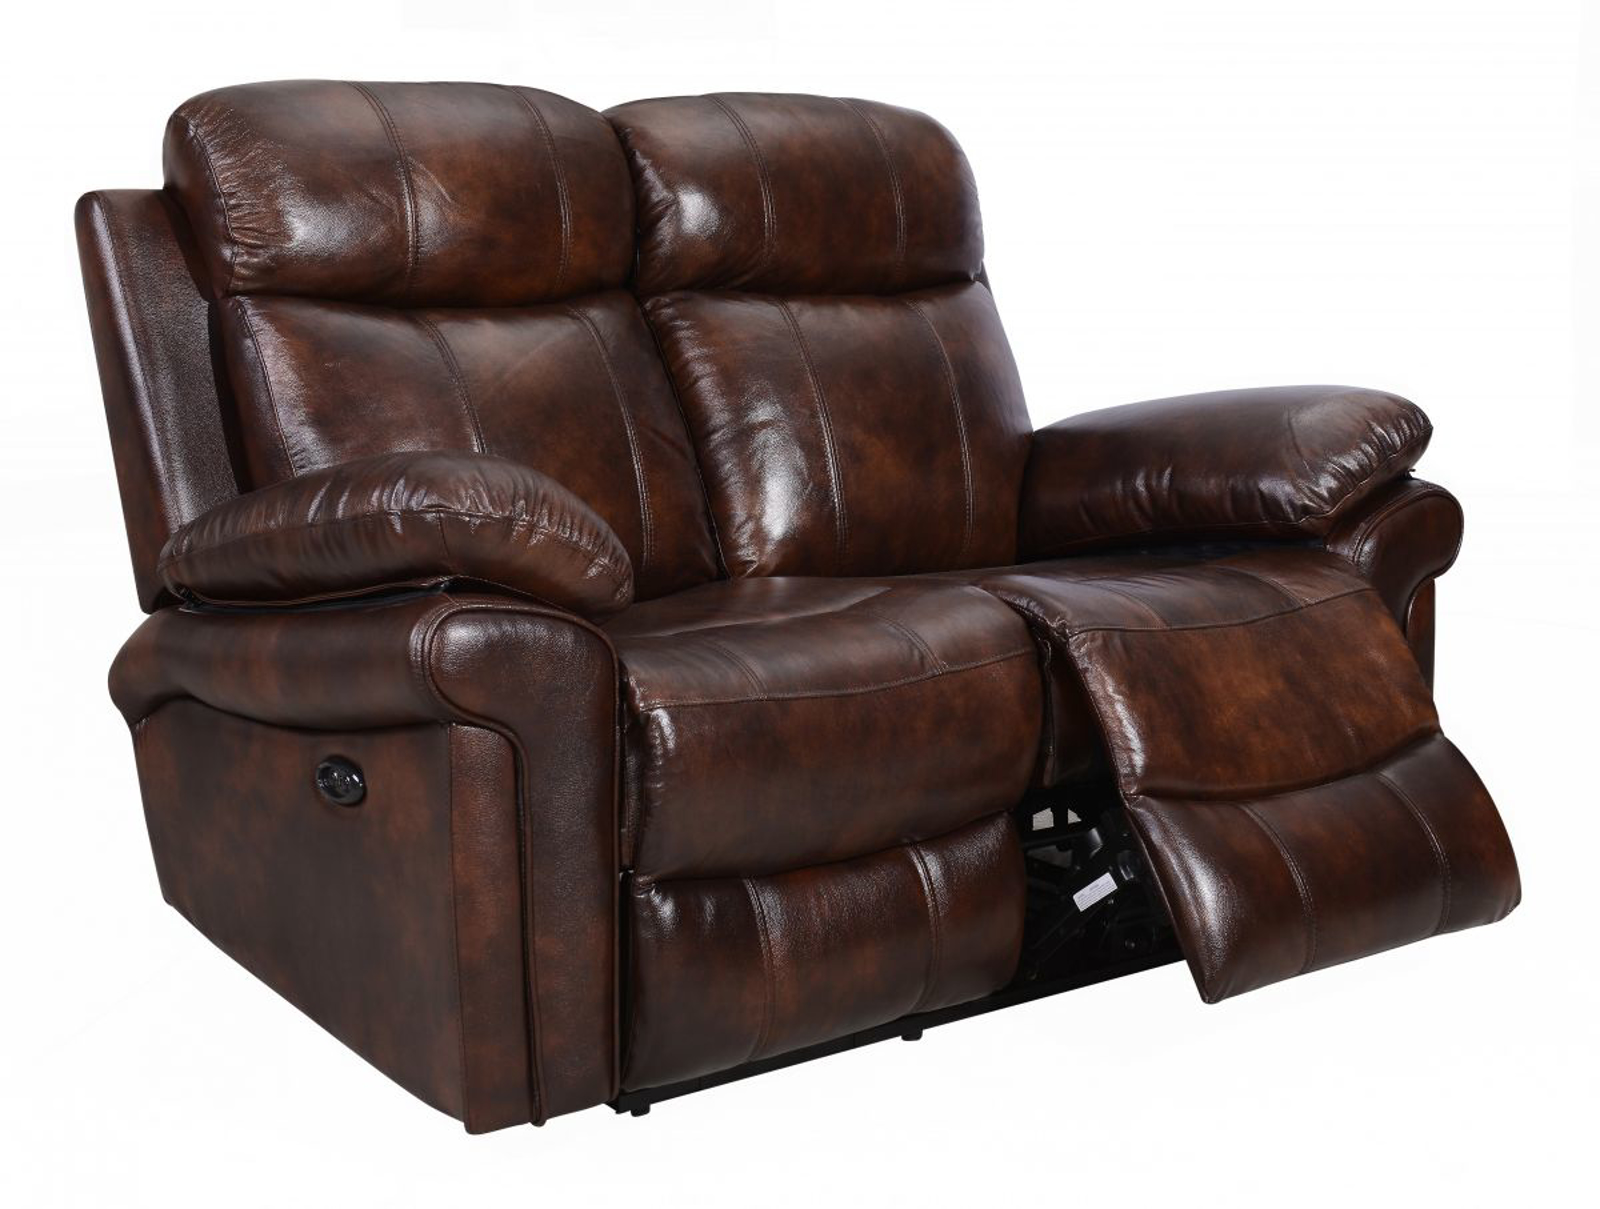 Picture of Shae Joplin Reclining Power Loveseat